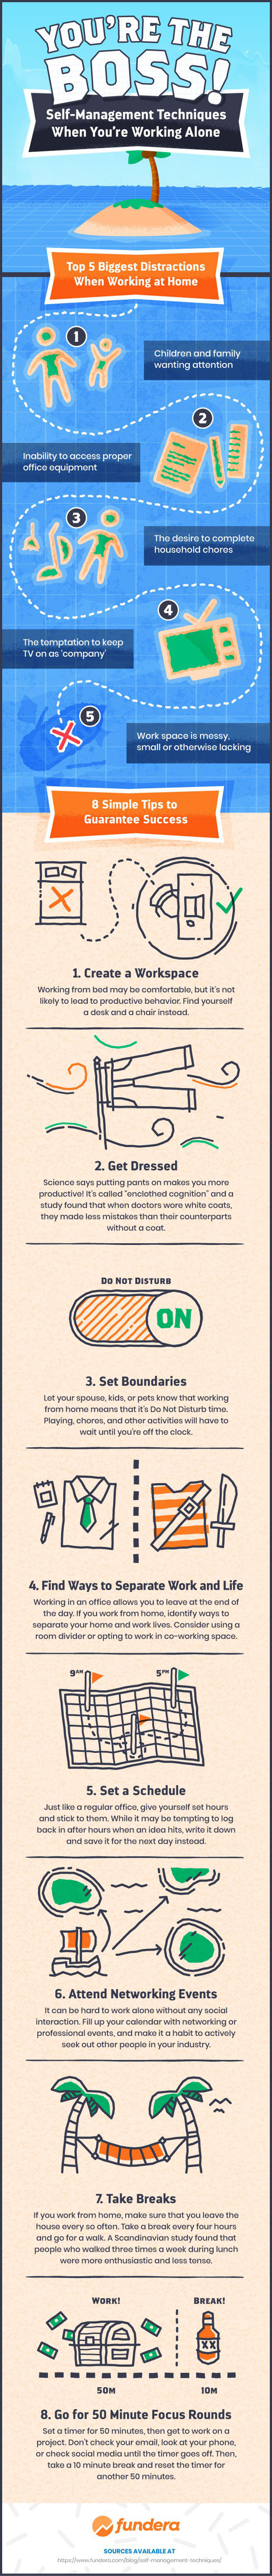 How to Stay Focused While Working From Home | Infographic